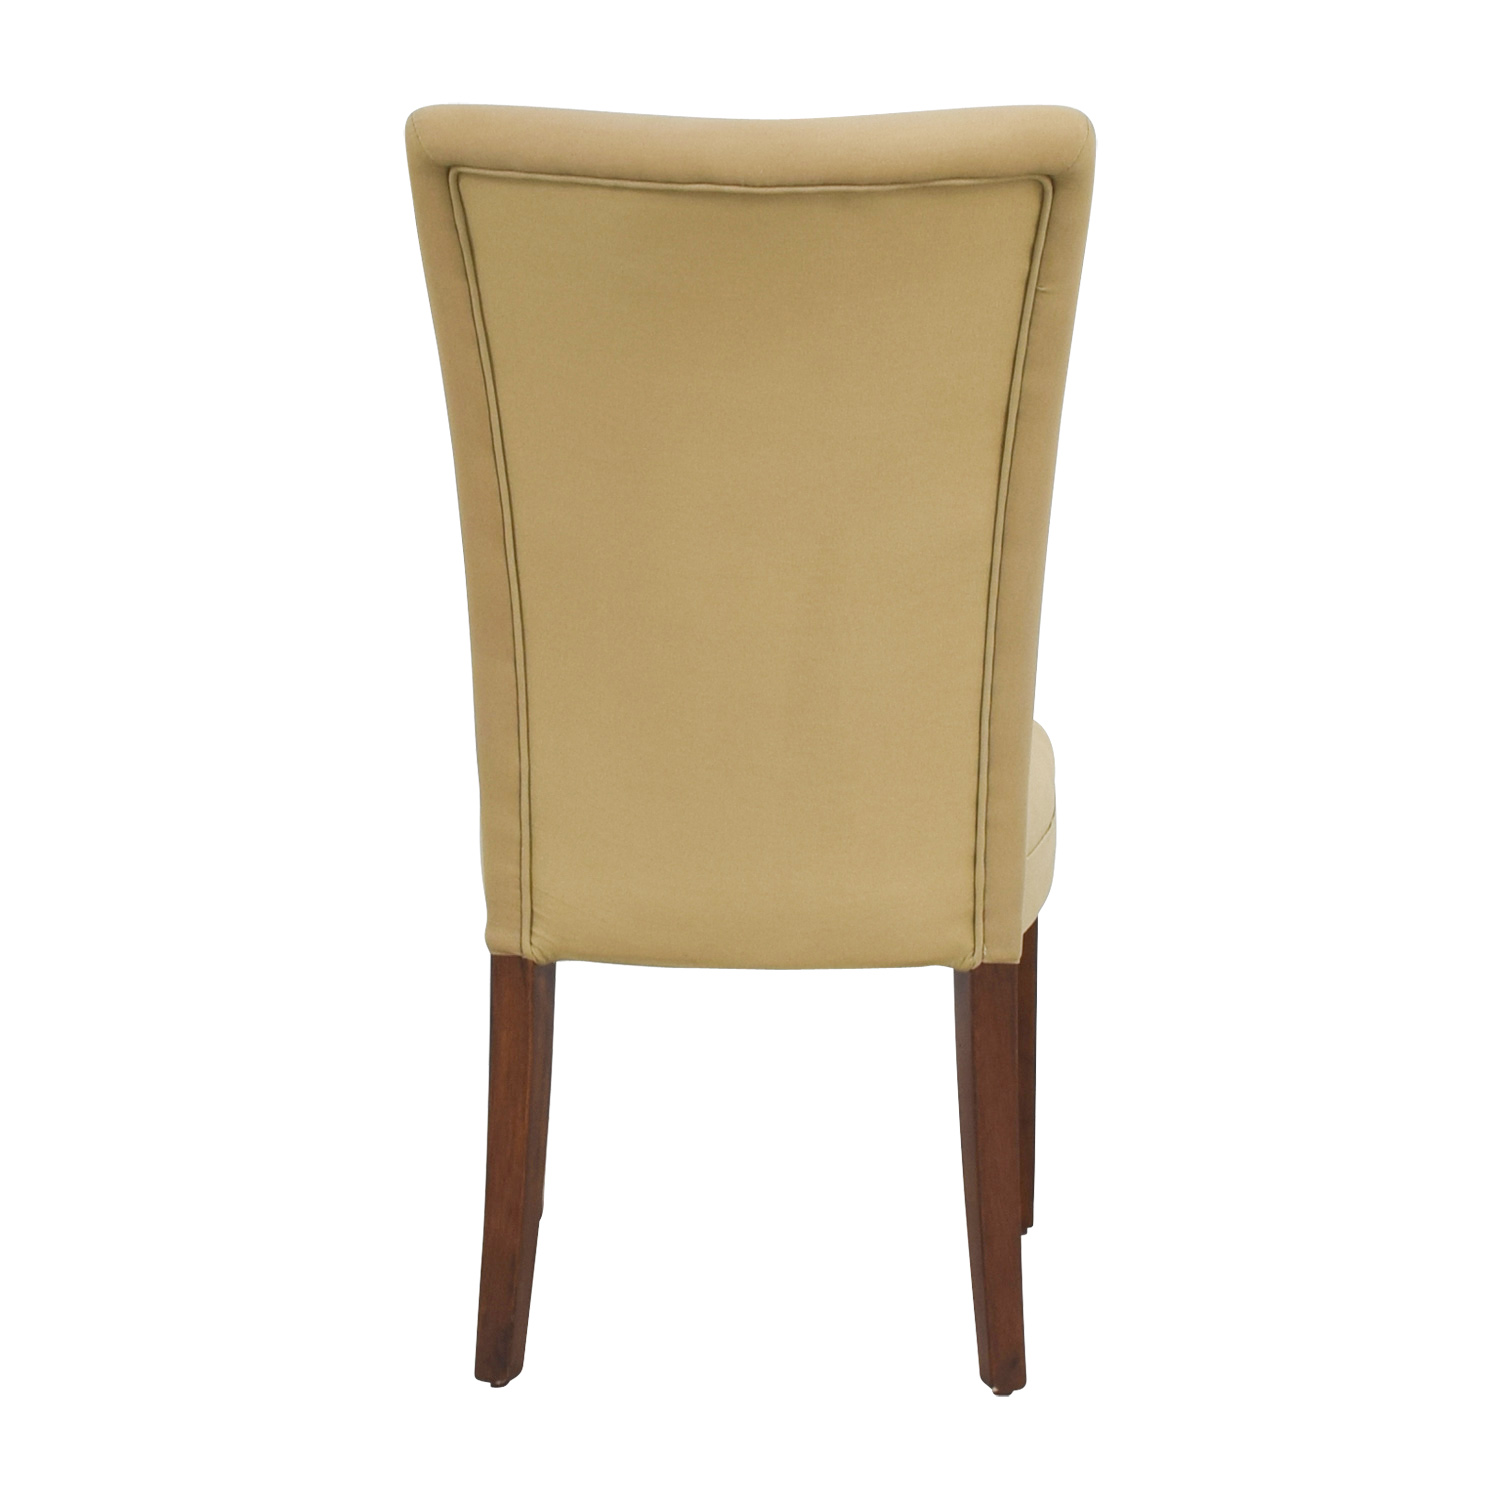 Coaster Coaster High Back Tan Upholstered Chair coupon